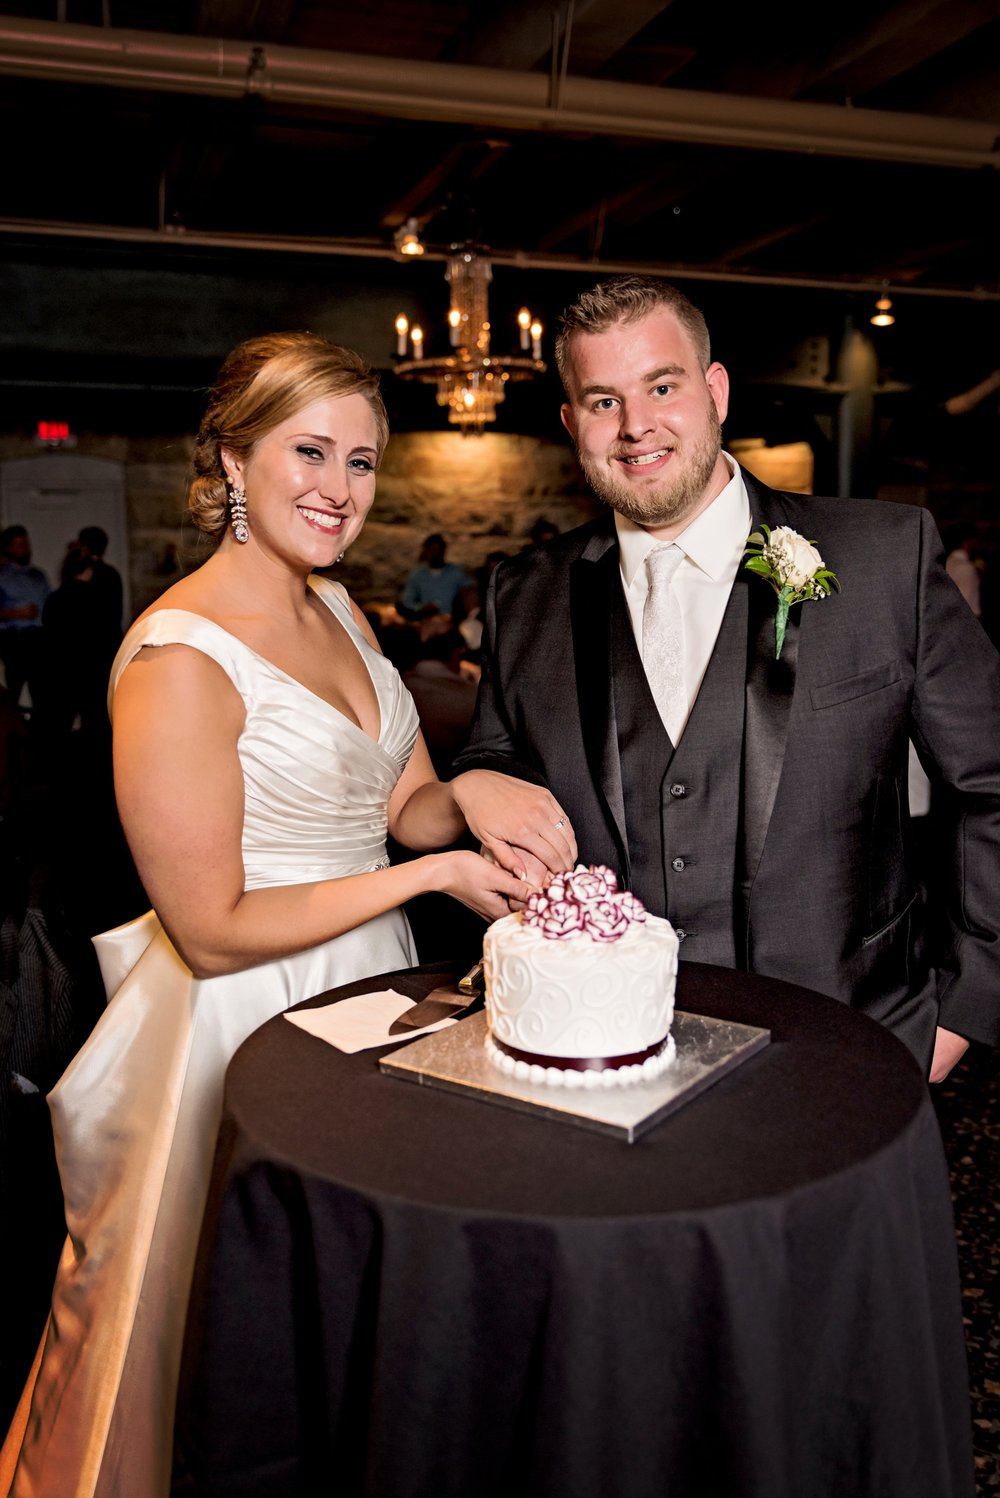 2018-Real-Wedding-Megan-Brenden-Rotella-Photography_0503.jpg